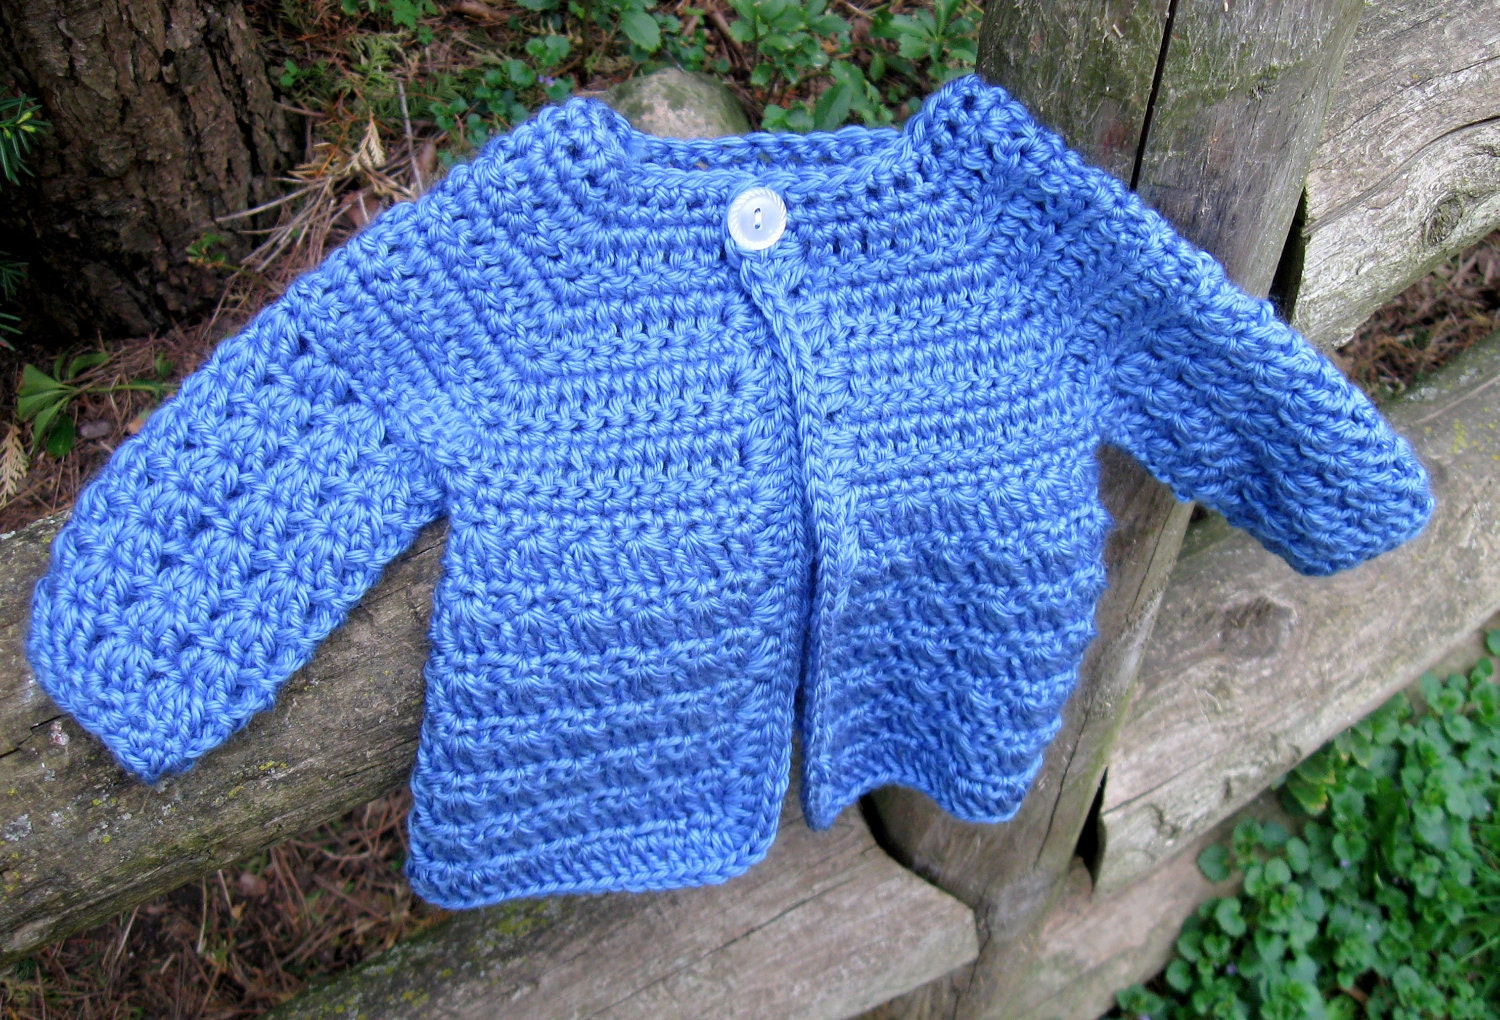 Baby Boy Crochet Sweater Pattern Download Instantly Robs Etsy